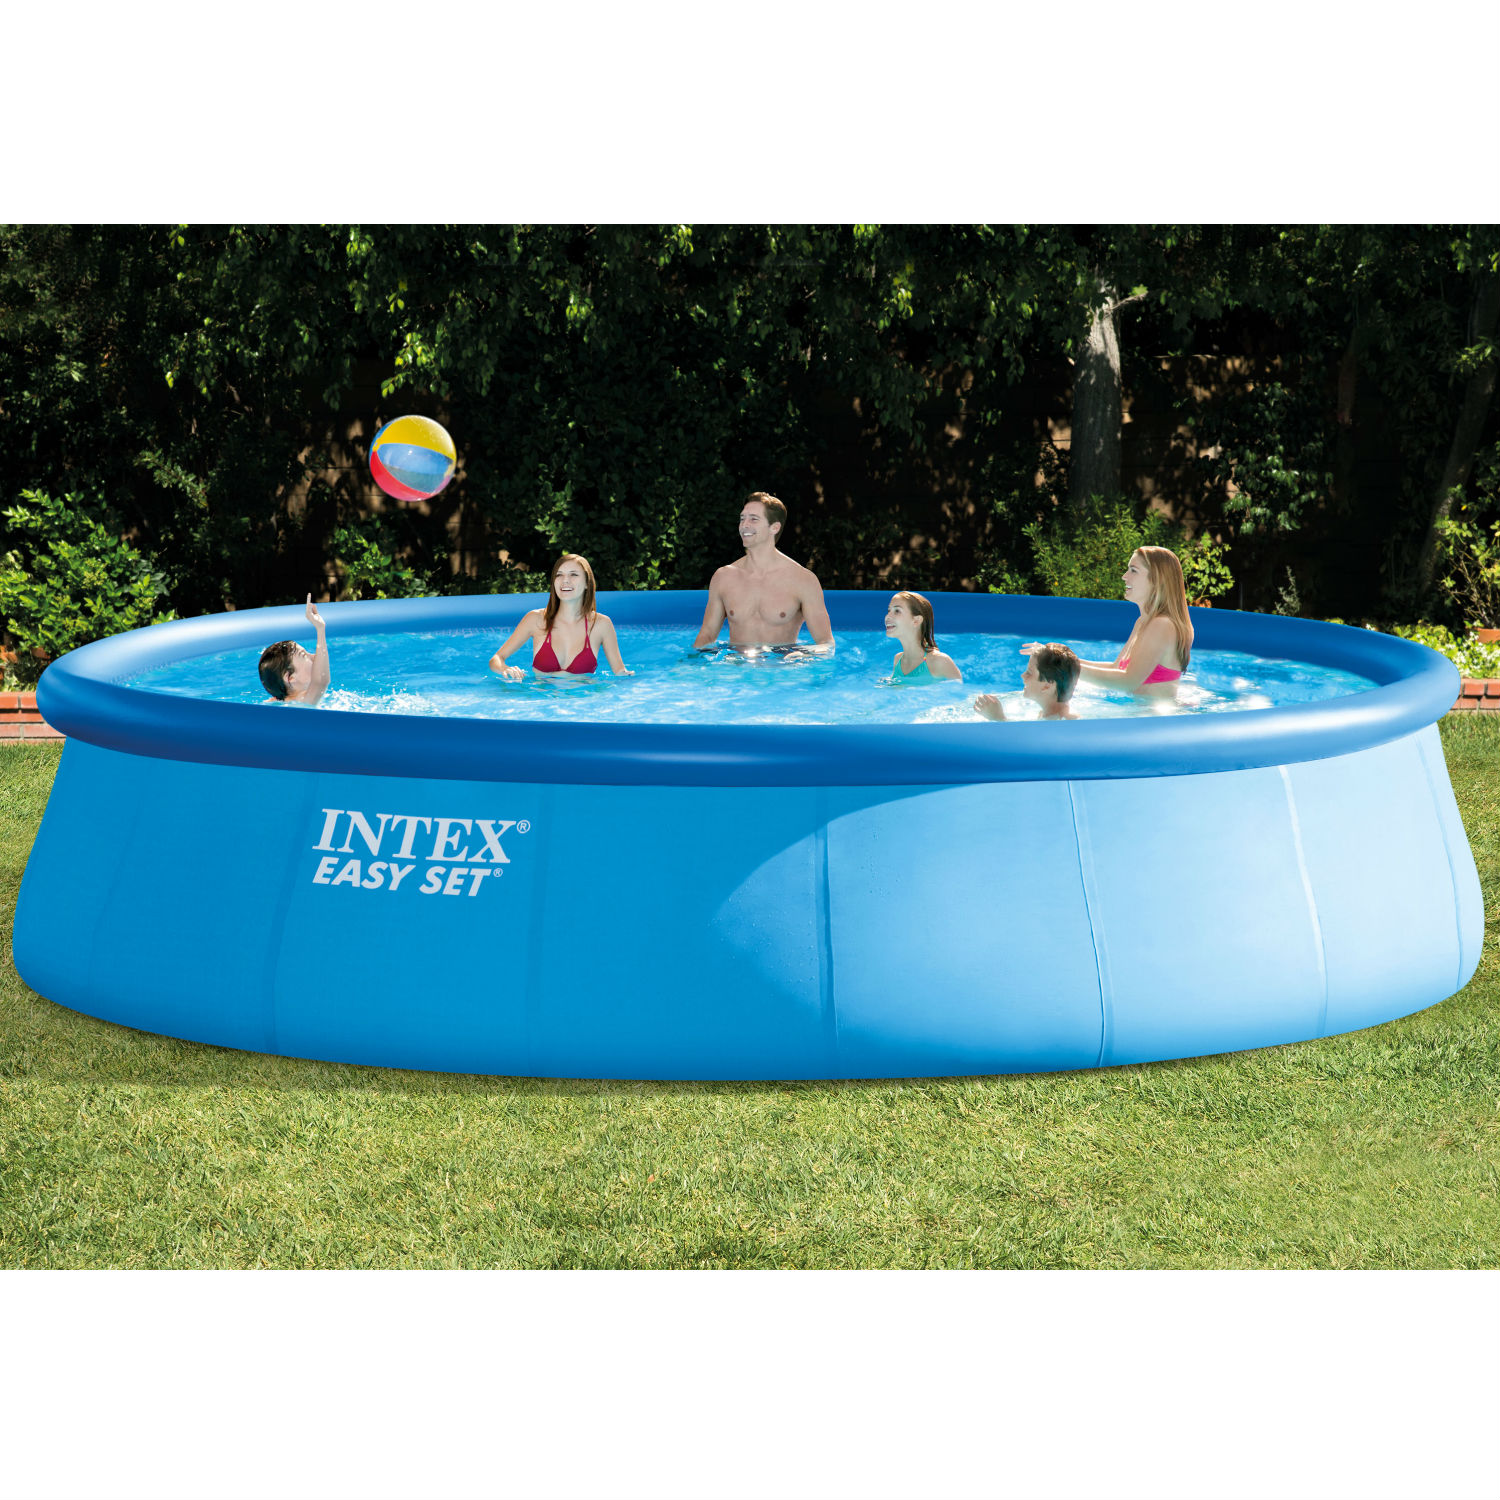 My quick buy on walmart marketplace marketplace pulse Intex inflatable swimming pool